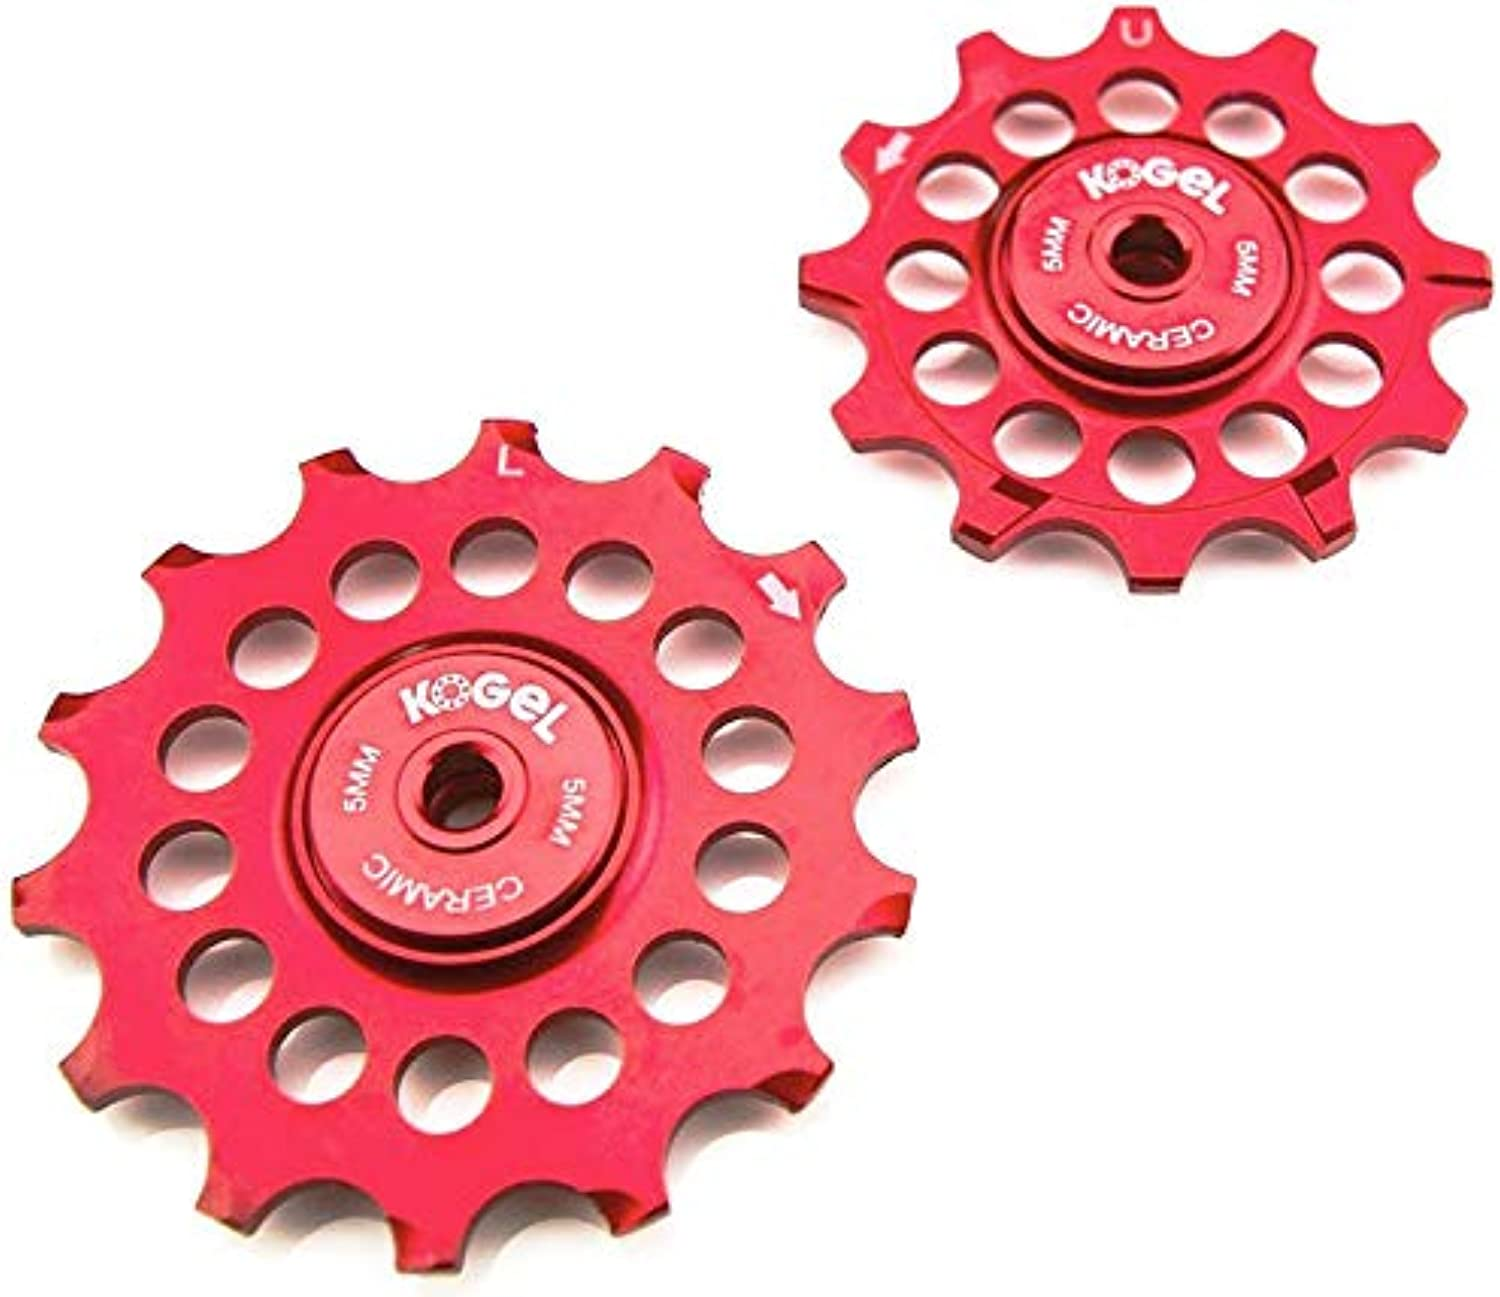 Kogel 12 14NW Narrow Wide Ceramic Oversize Road Pulley Set (Shimano) Red